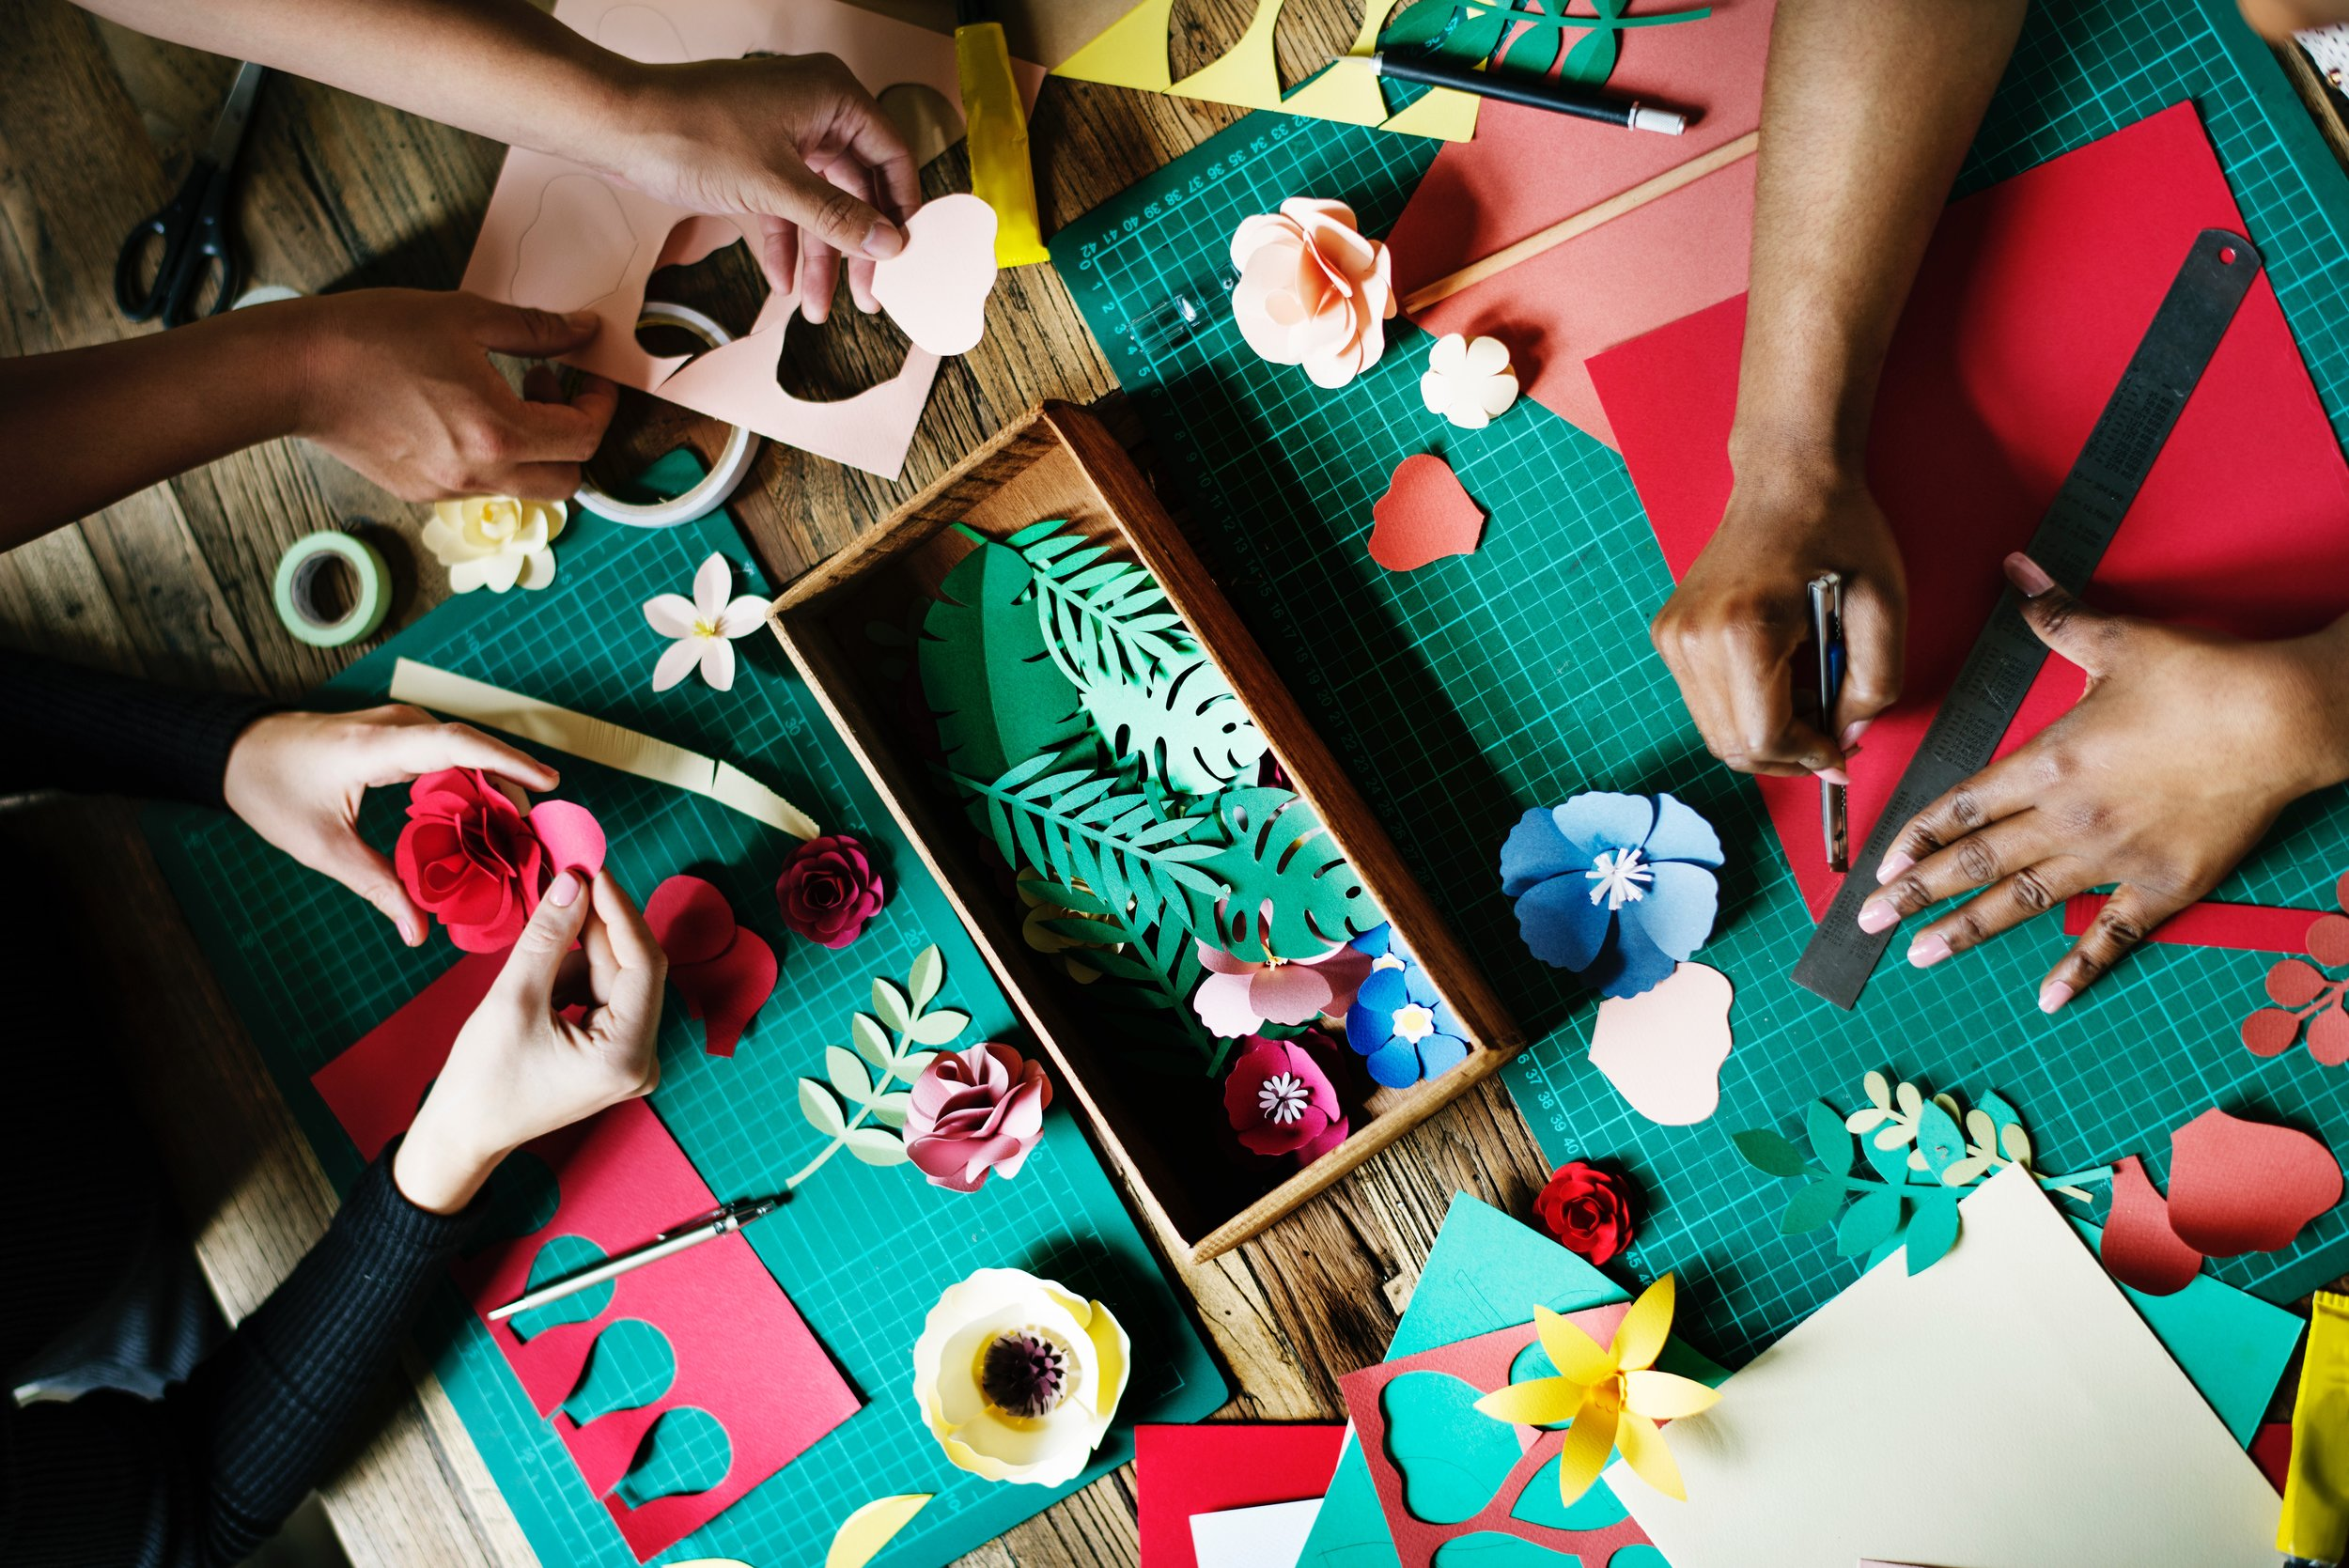 THURSDAY MORNING CRAFT GROUP   With prayer, reading and then various crafting activities, we strengthen our relationship with each other and God.